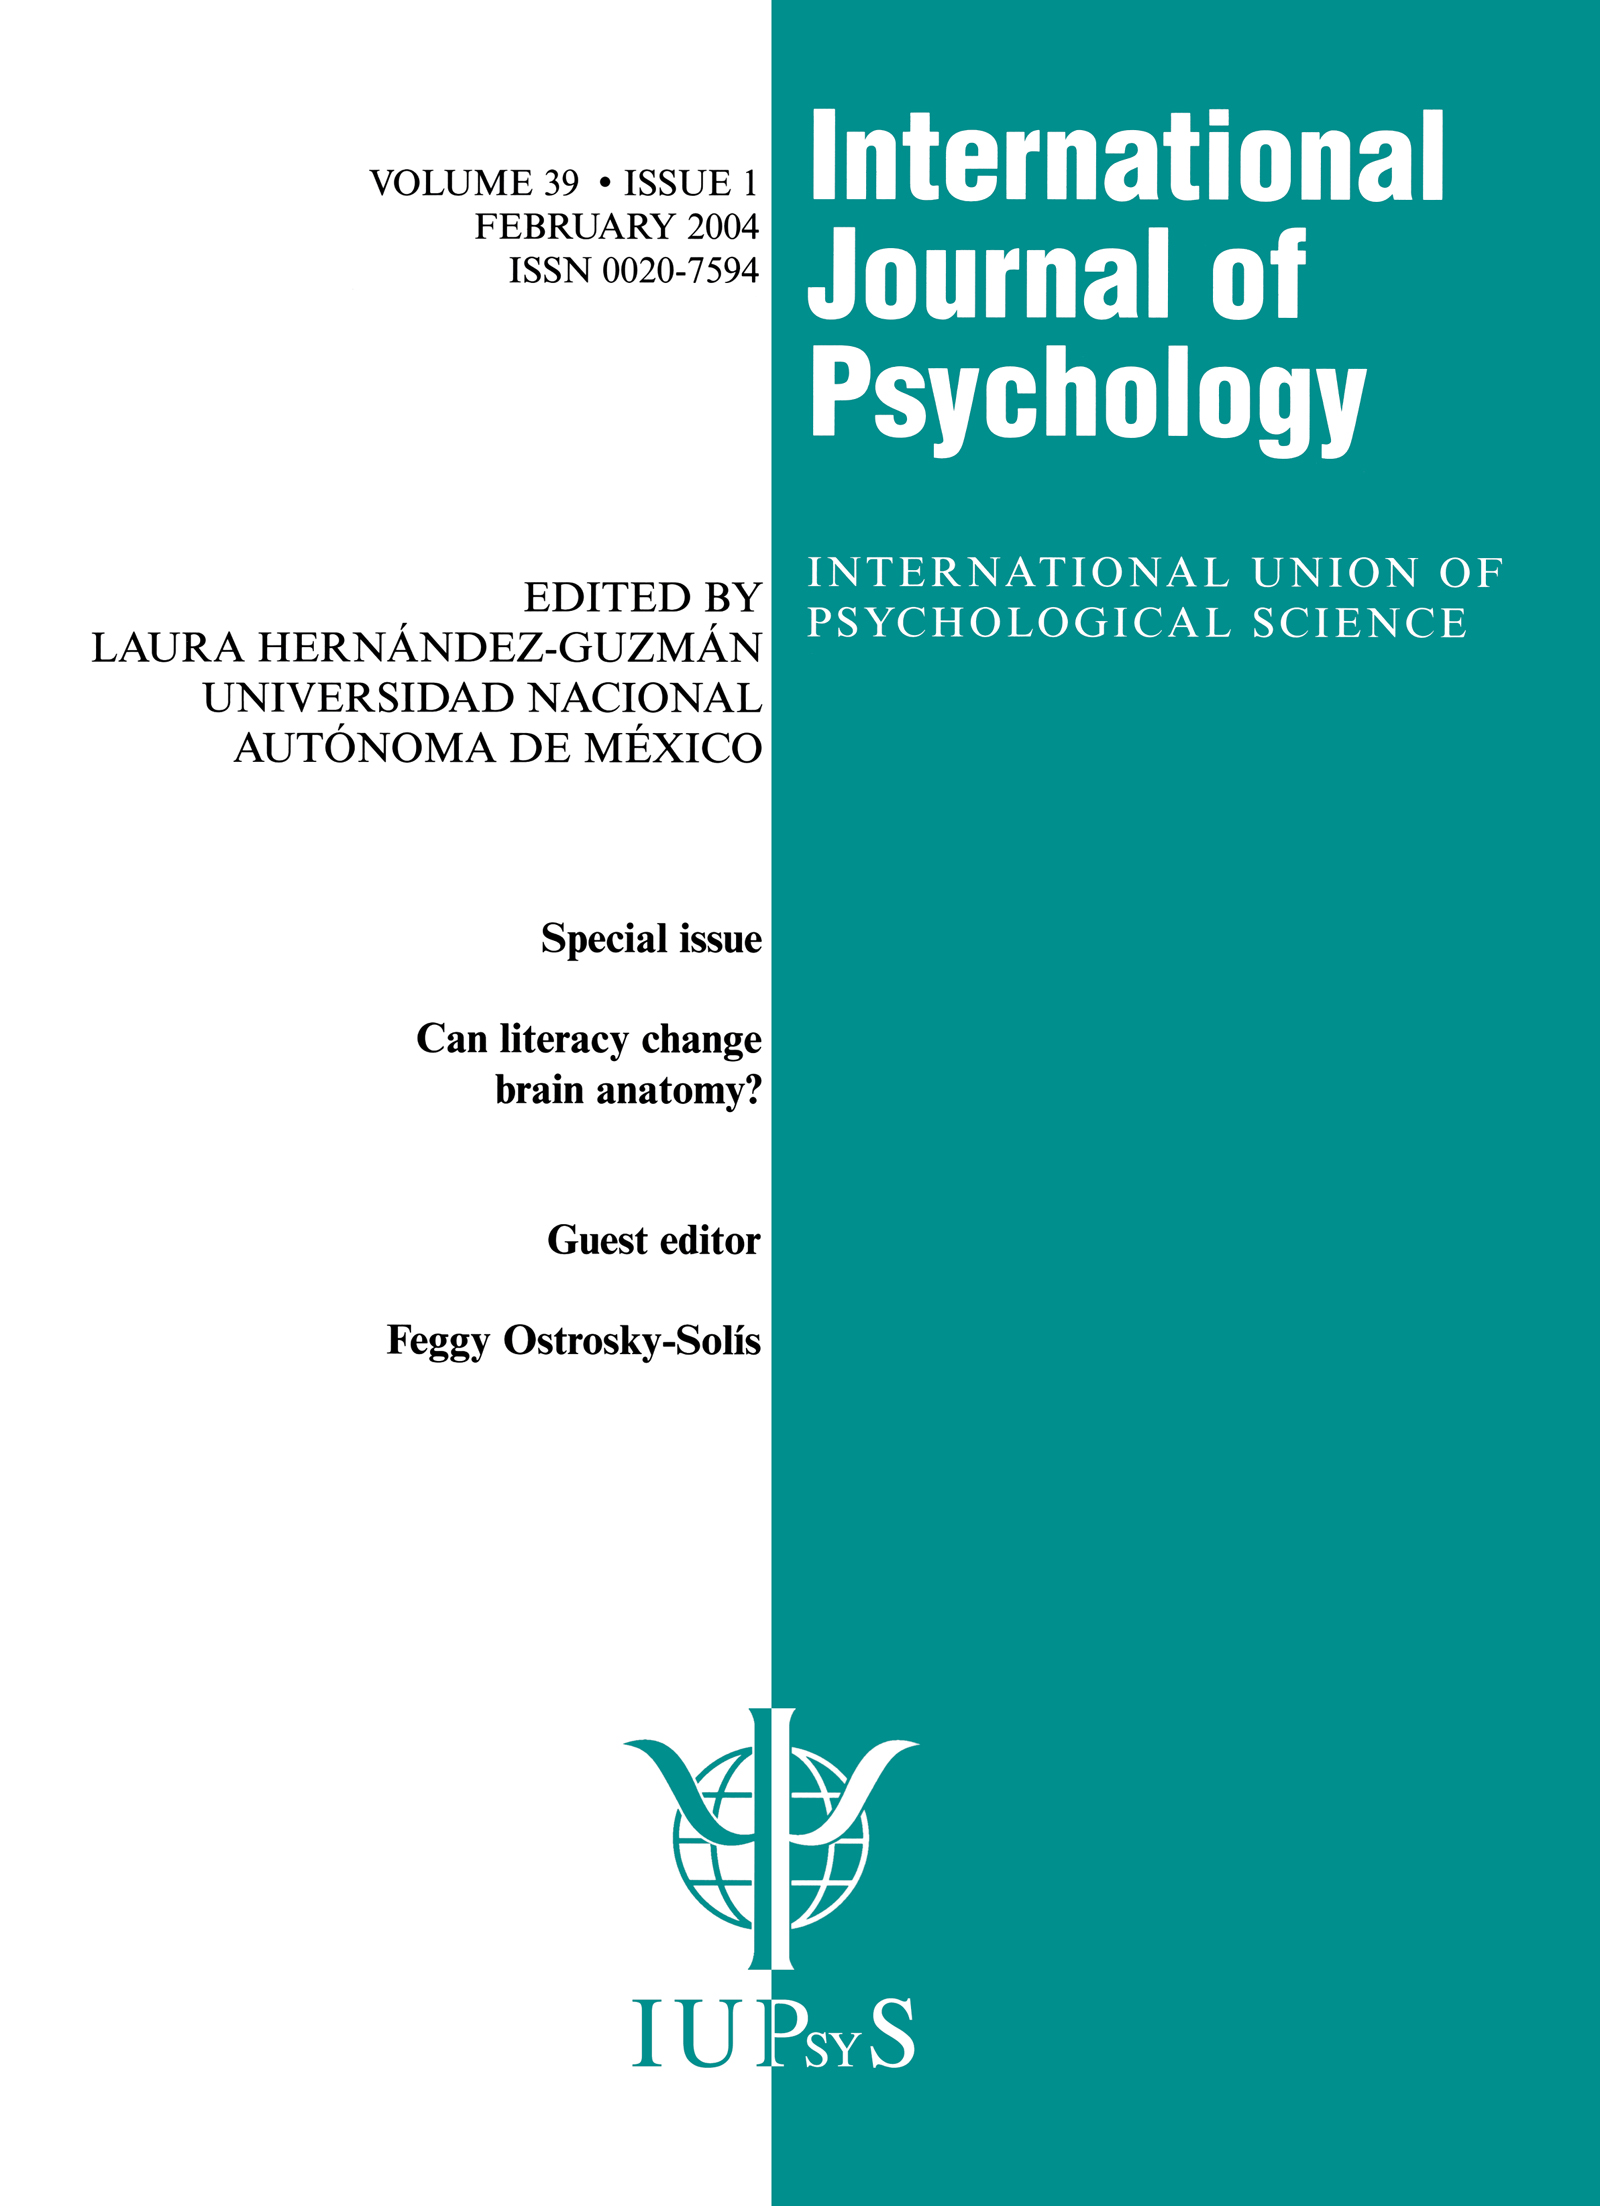 Can Literacy Change Brain Anatomy?: A Special Issue of the International Journal of Psychology book cover